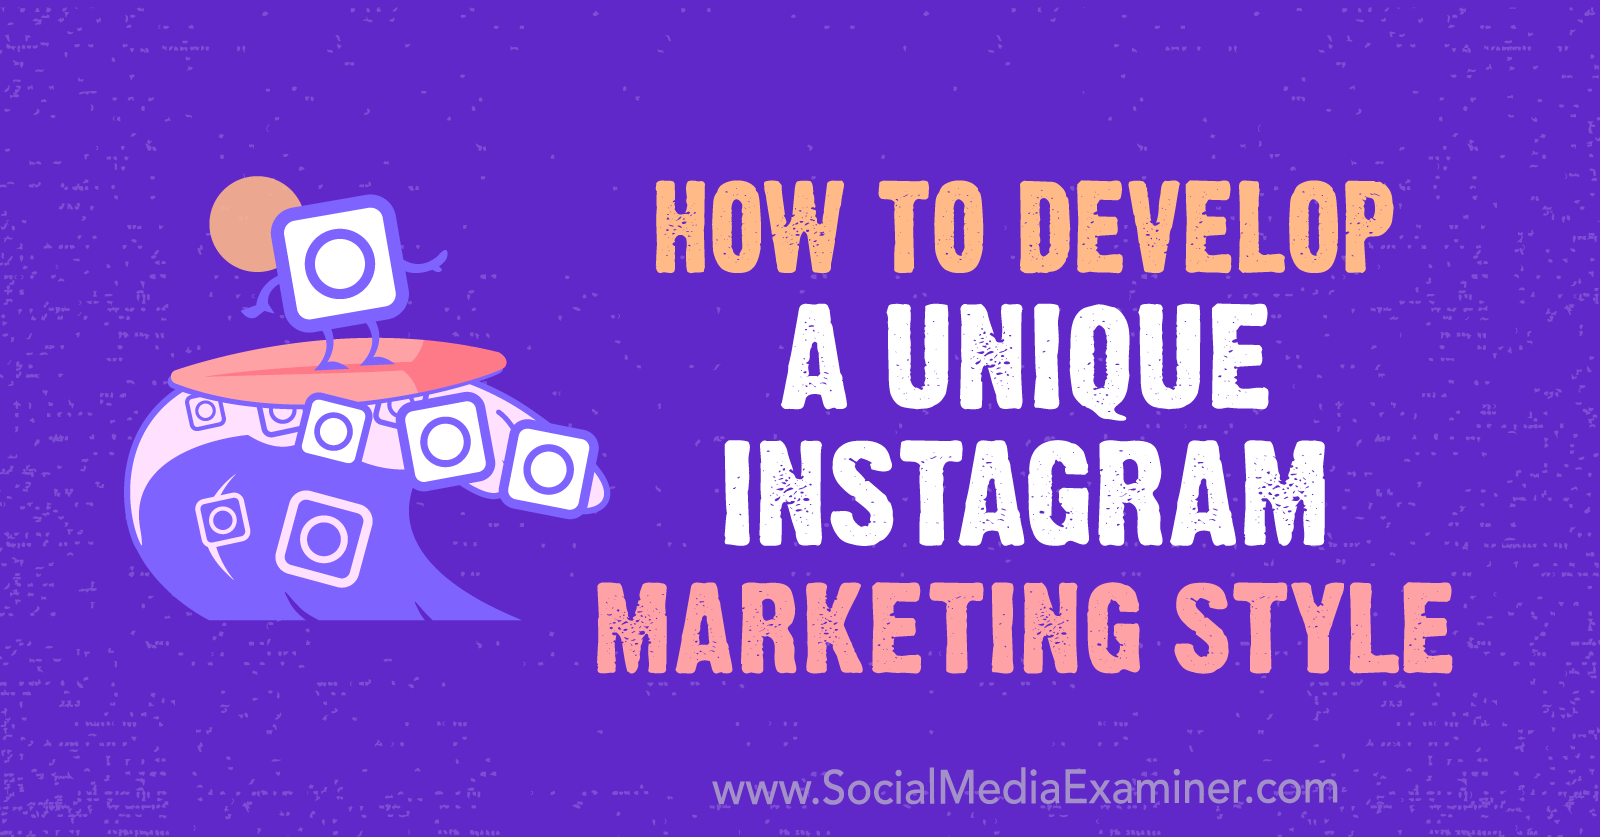 5 ways to improve your instagram marketing social media examiner How To Develop A Unique Instagram Marketing Style Social Media Examiner